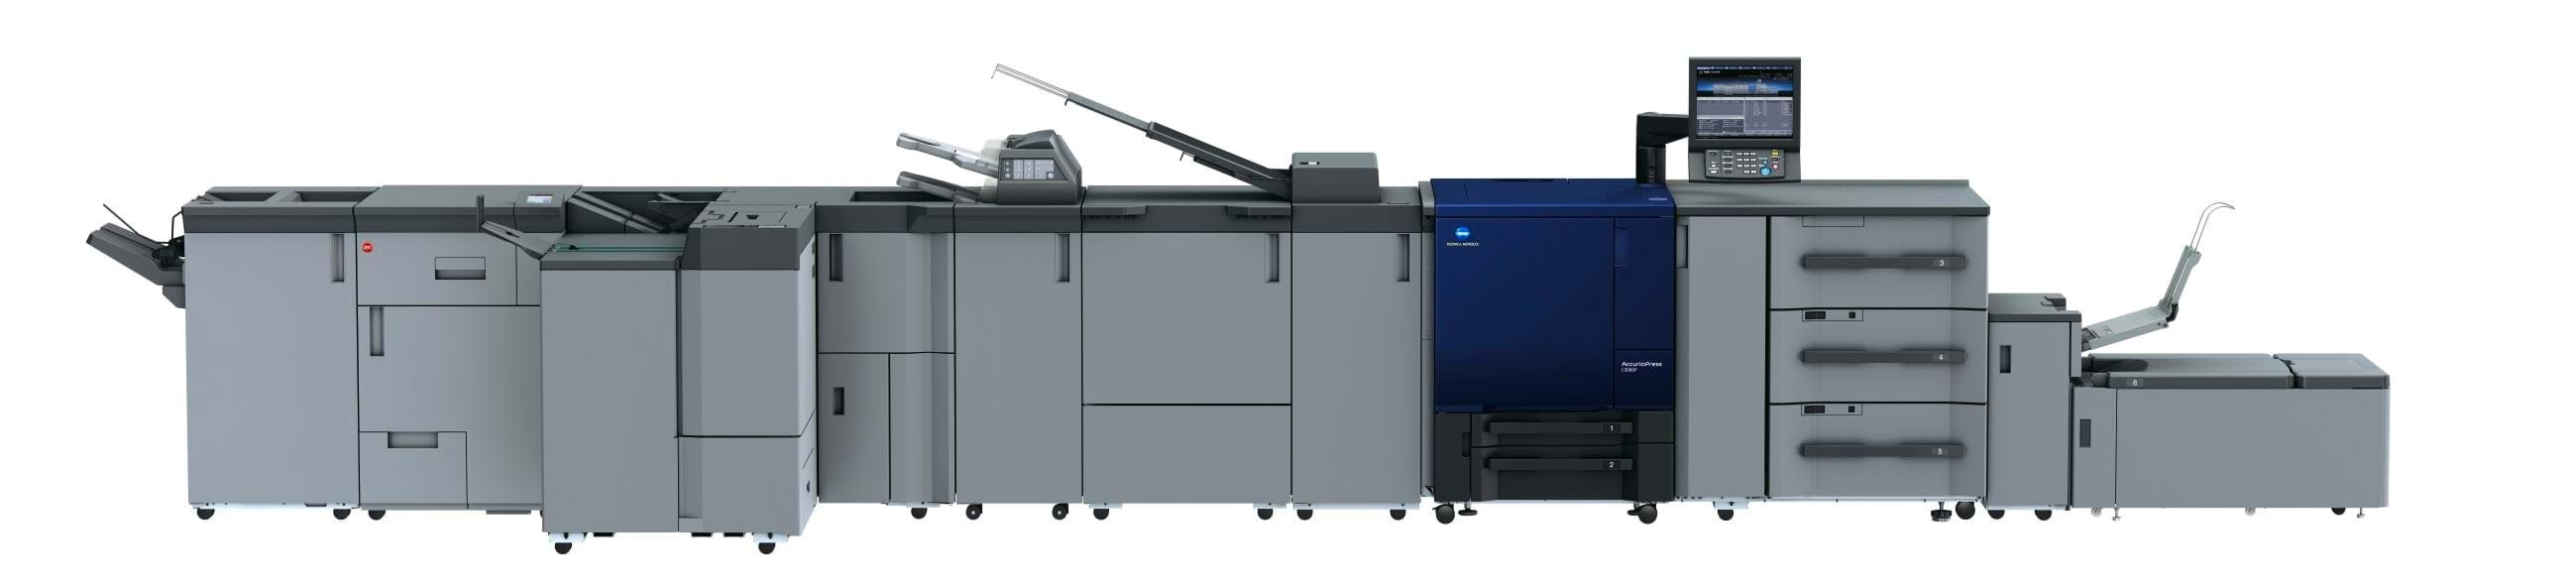 Profesionālais printeris Konica Minolta accurio press c3080p